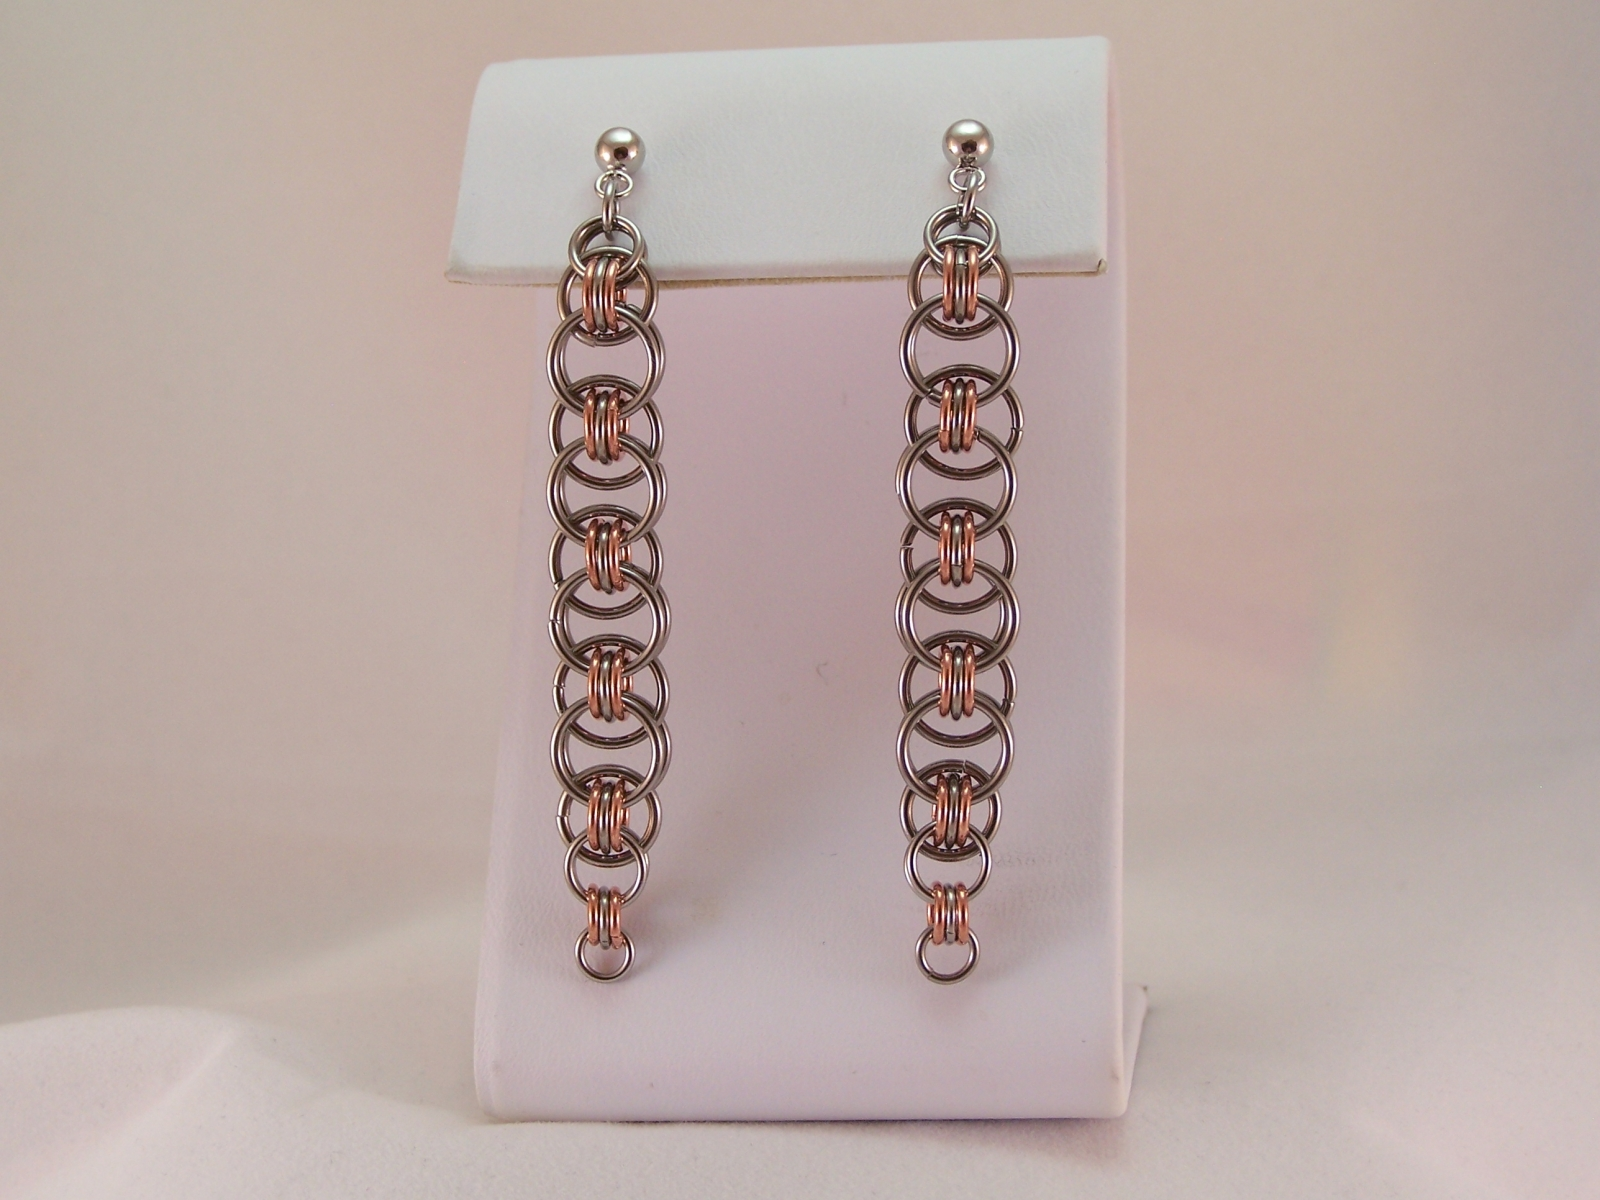 Helm Chain Danglers, in Copper & Stainless